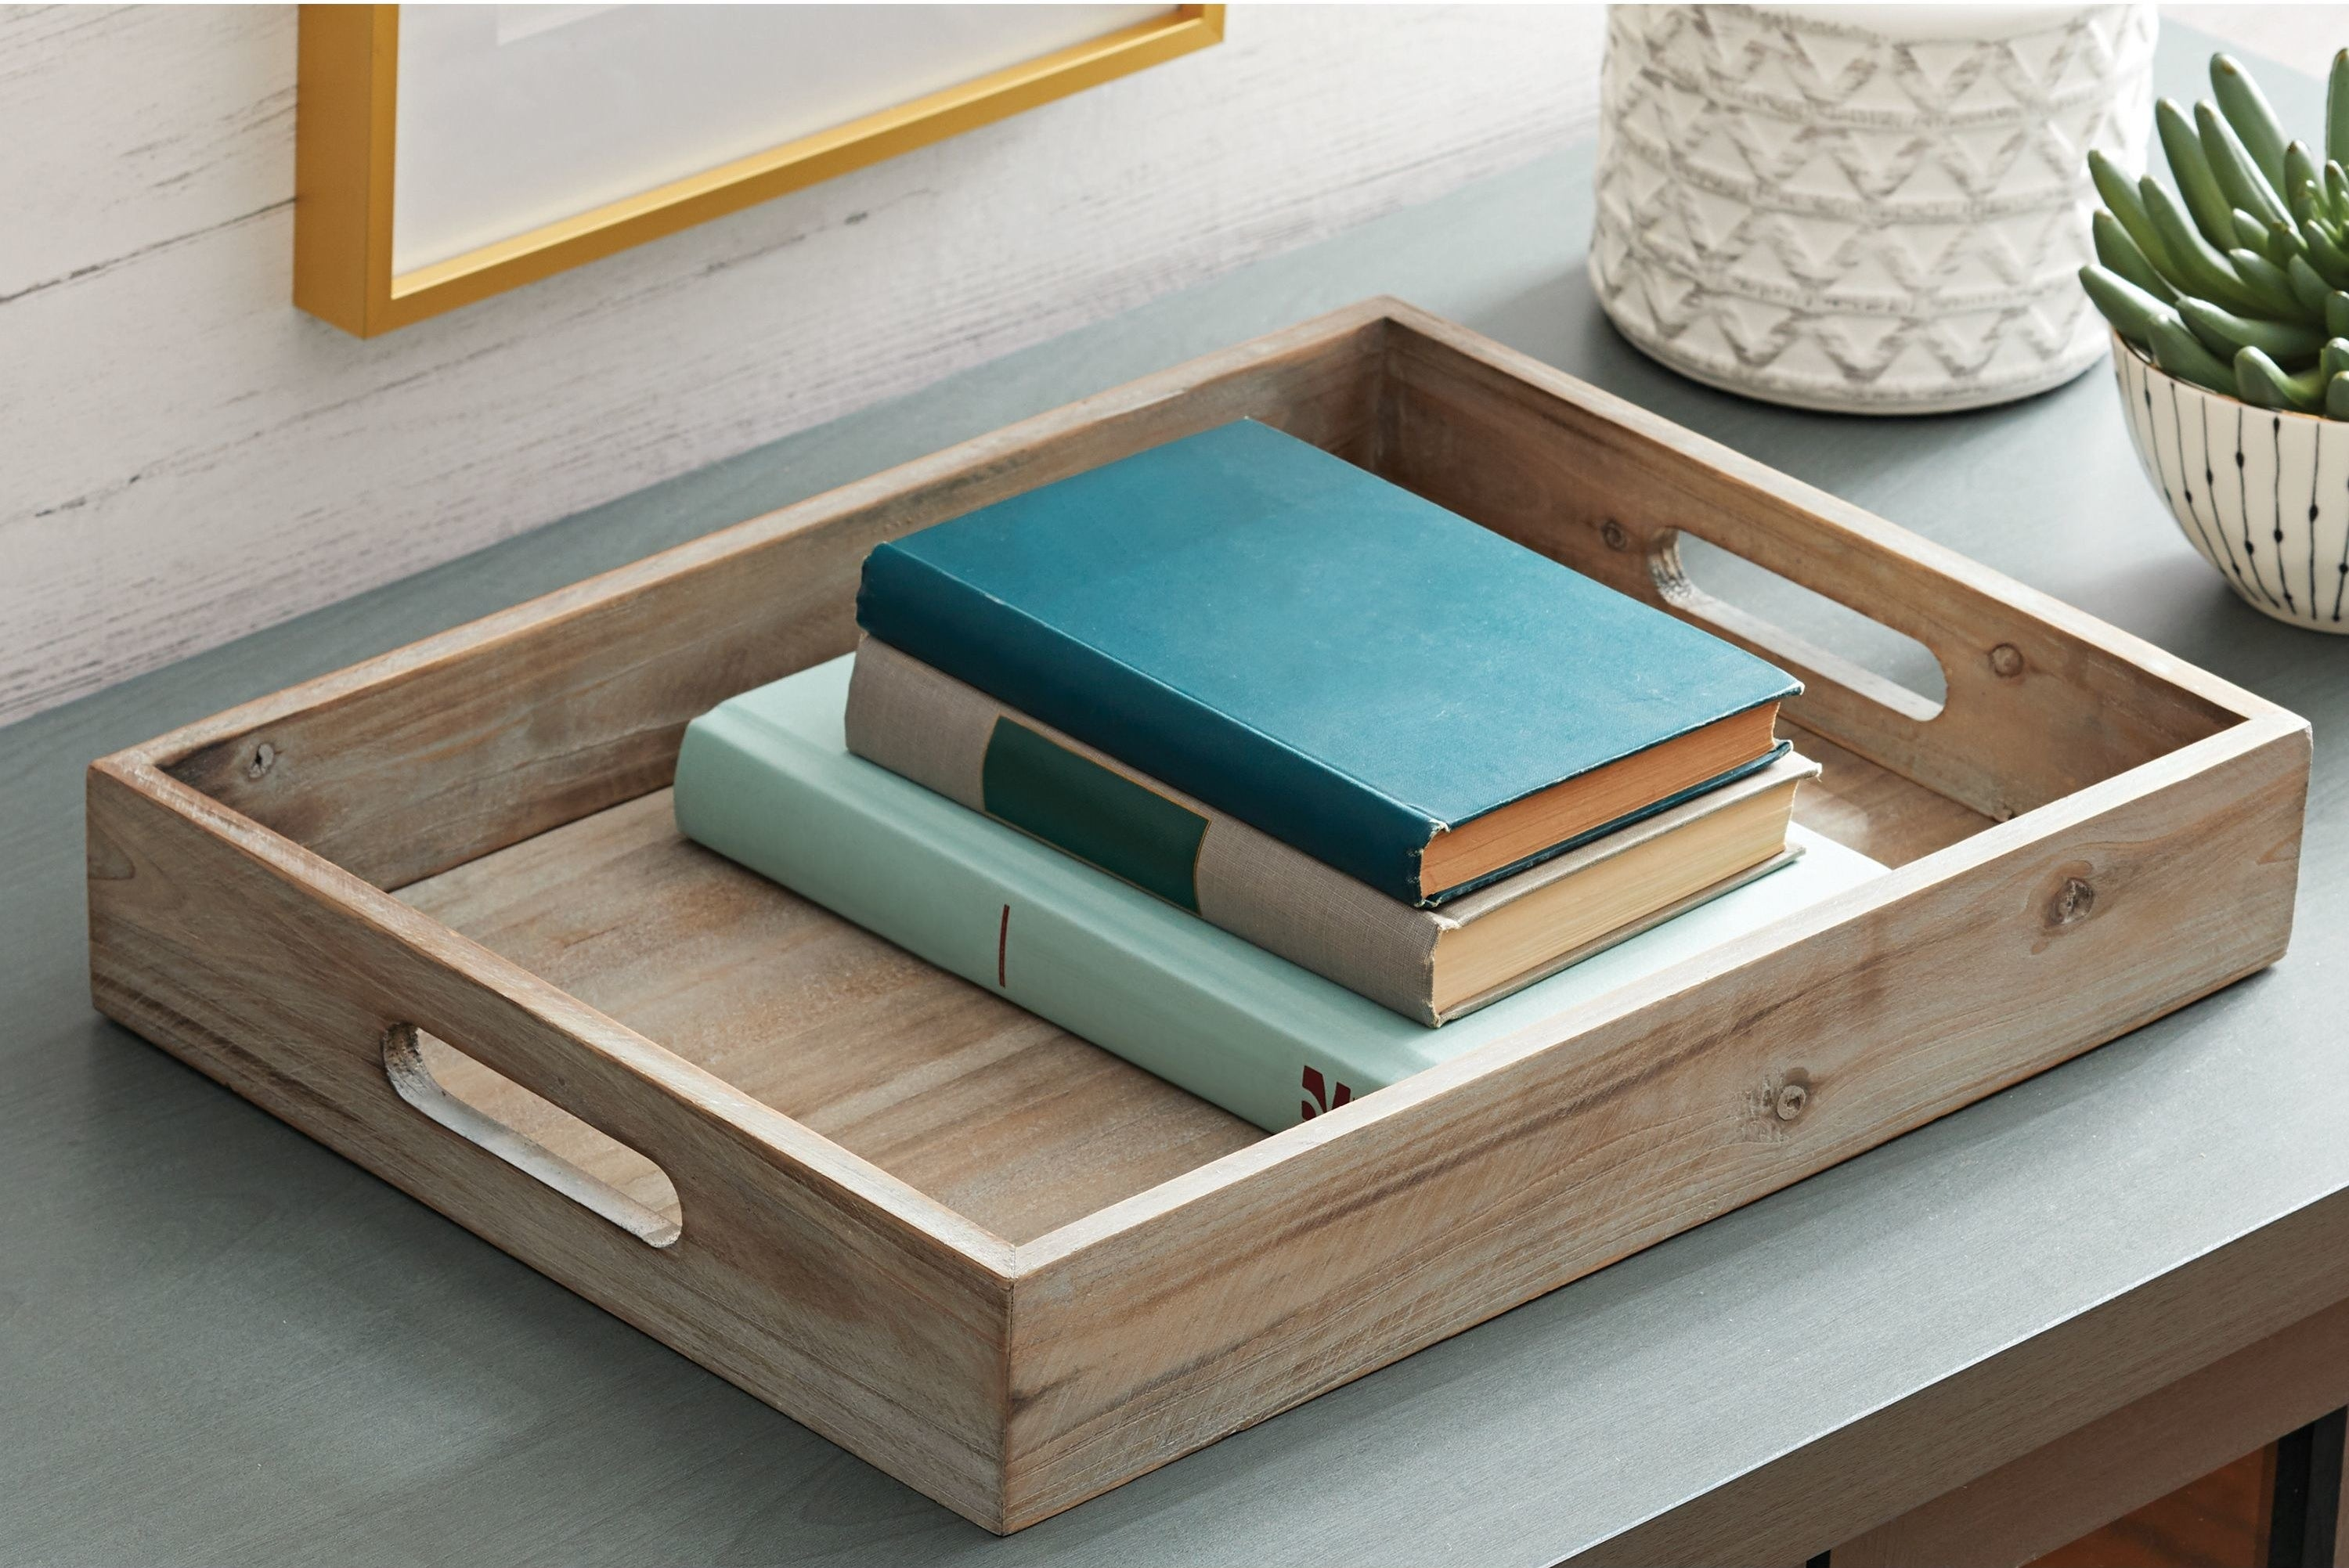 A wooden tray on a table